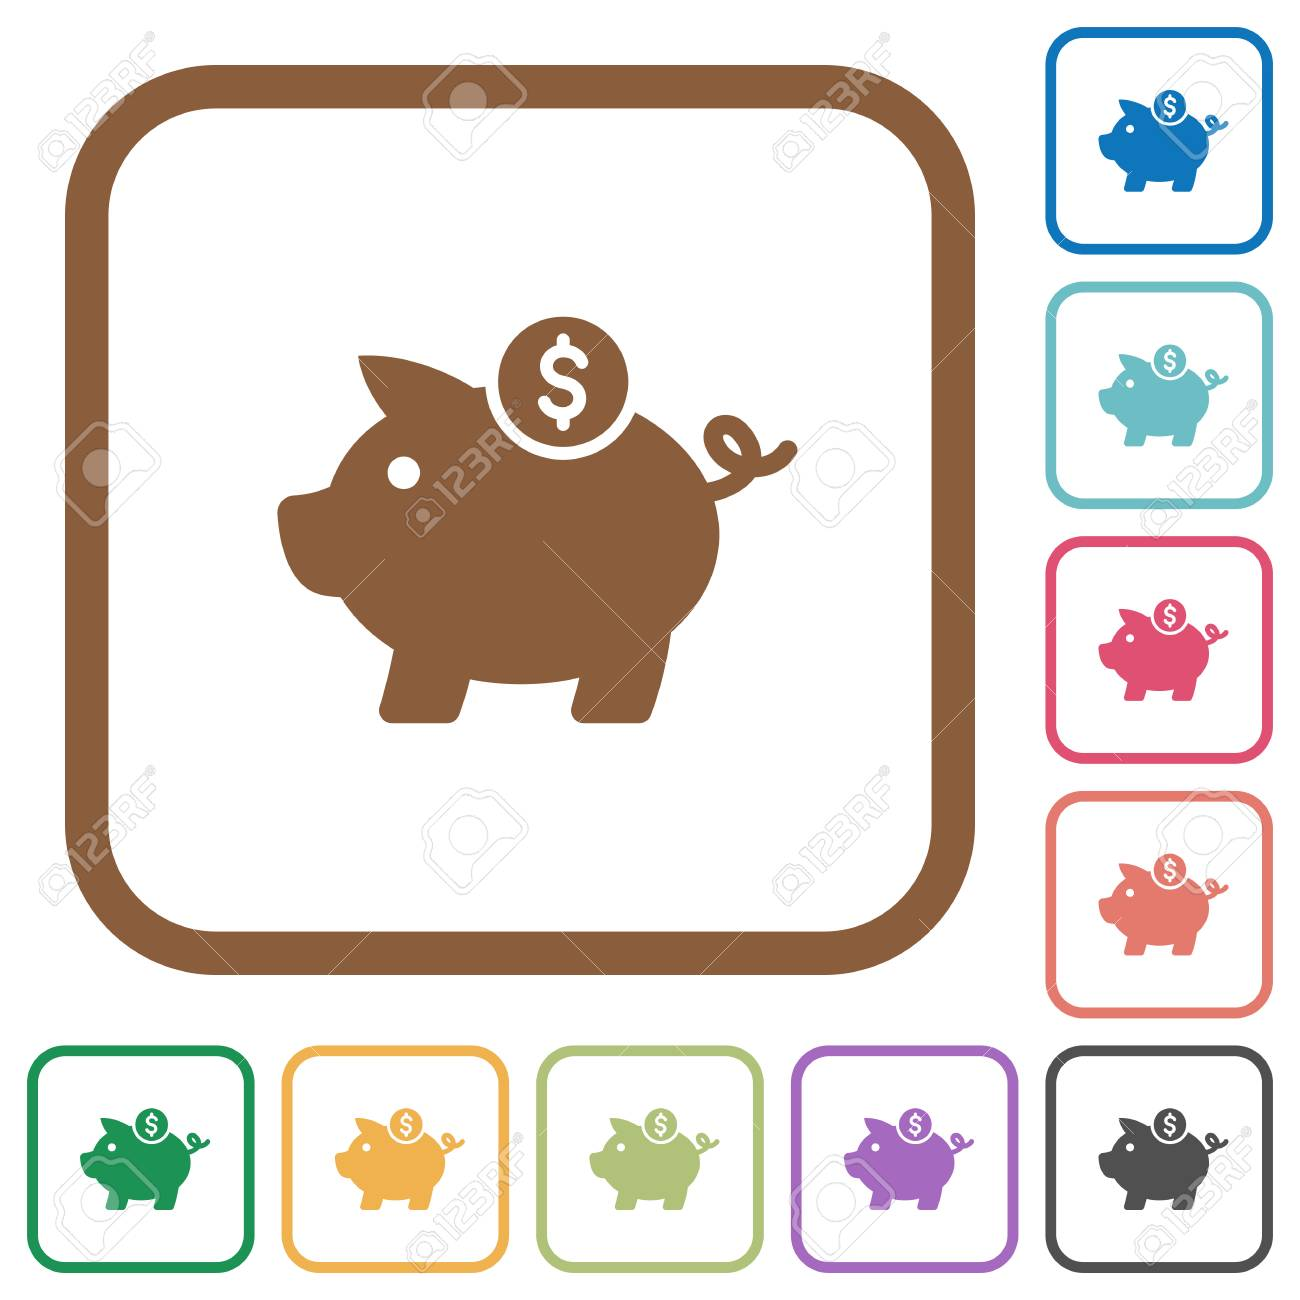 Dollar Piggy Bank Simple Icons In Color Rounded Square Frames ...